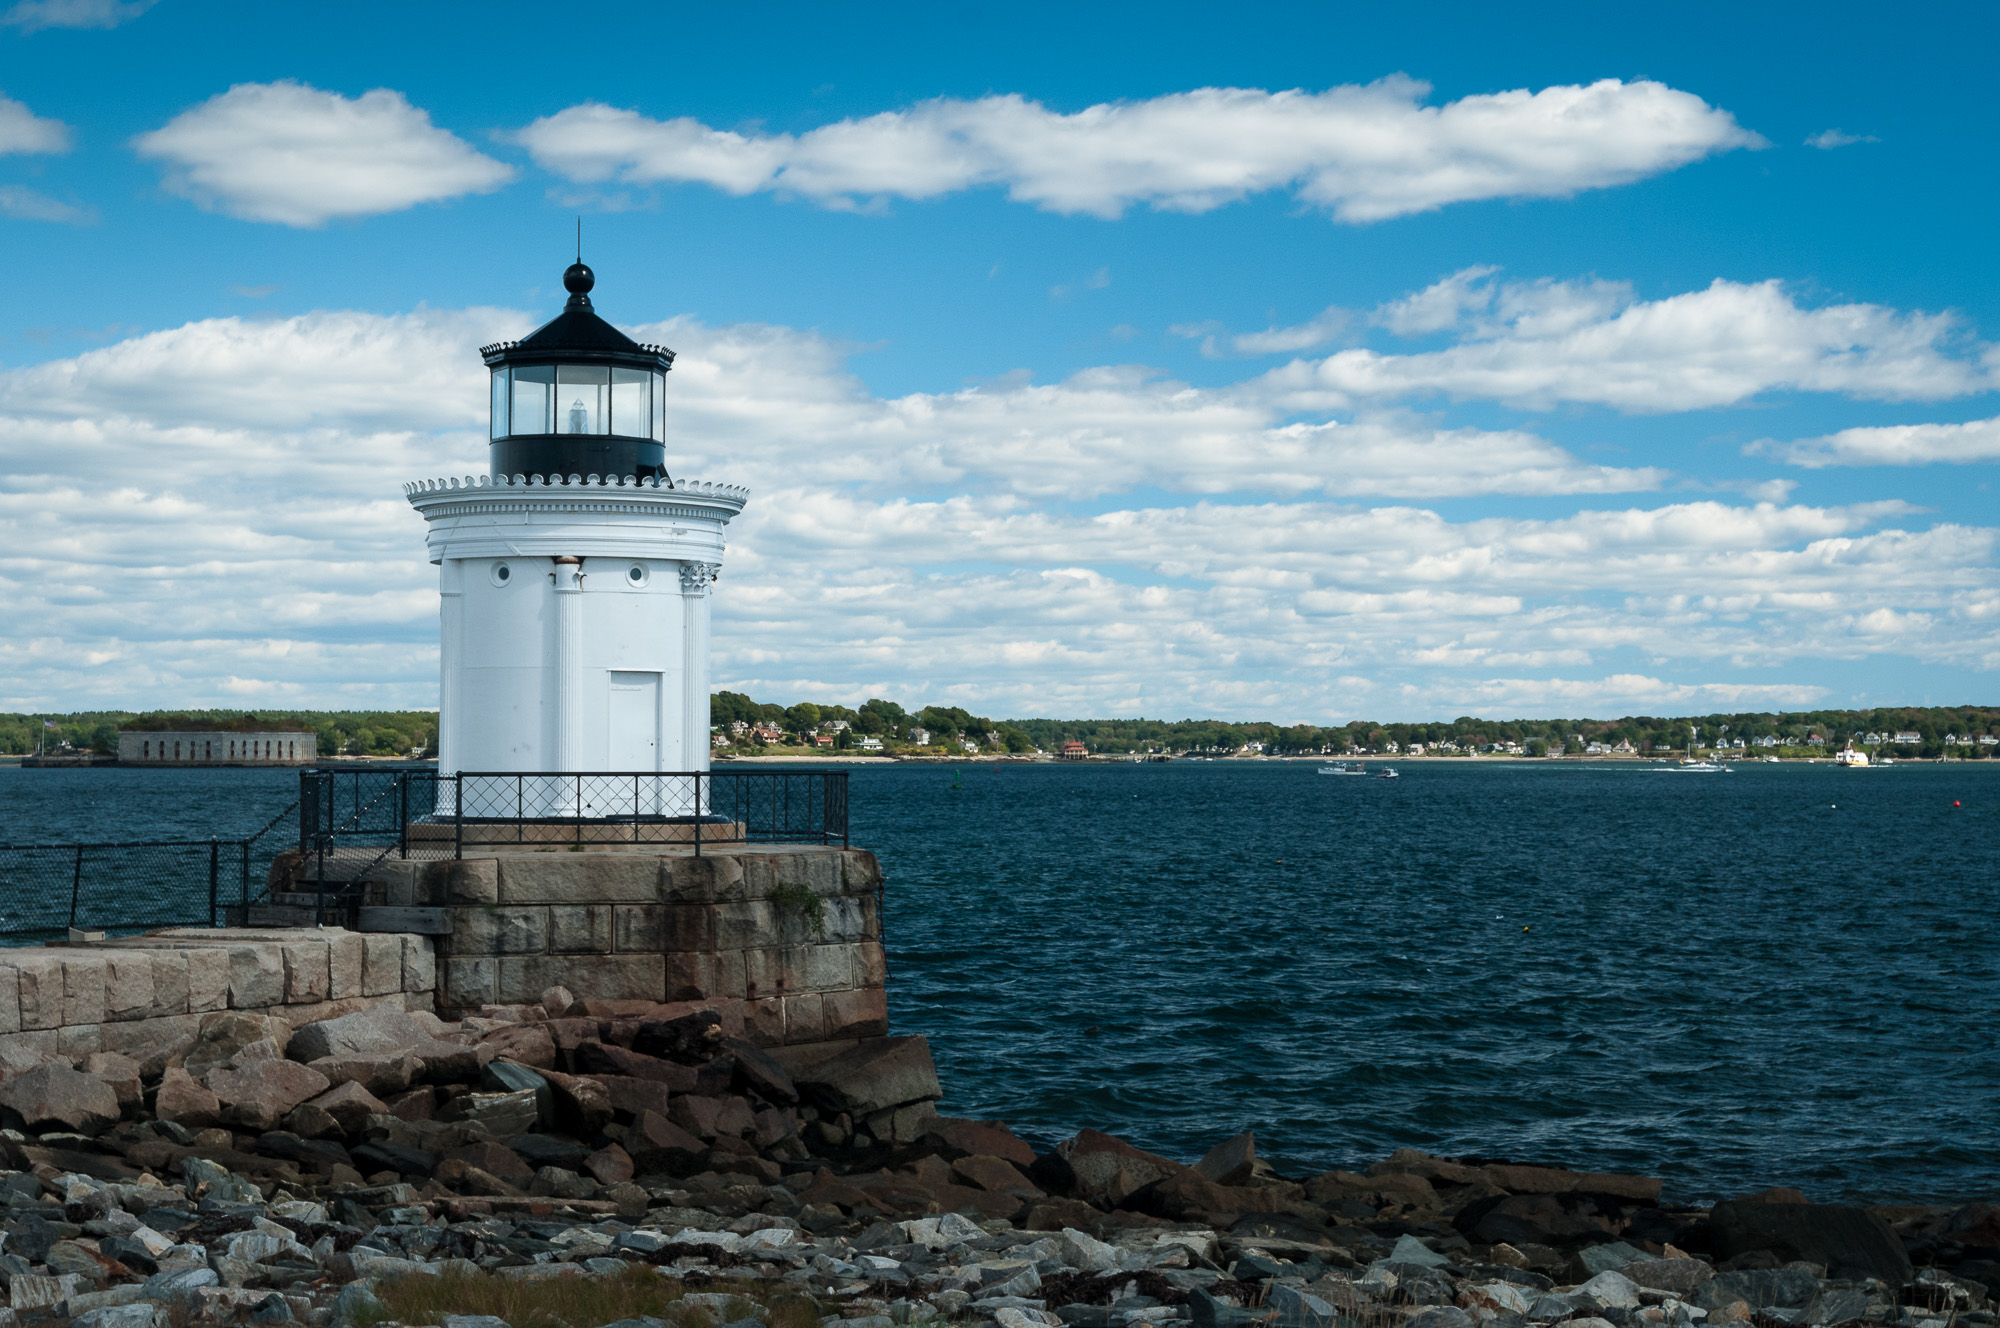 Portland Breakwater (Bug) Light, in South Portland, Maine, with distant view of Fort Gorges to the left in the bay